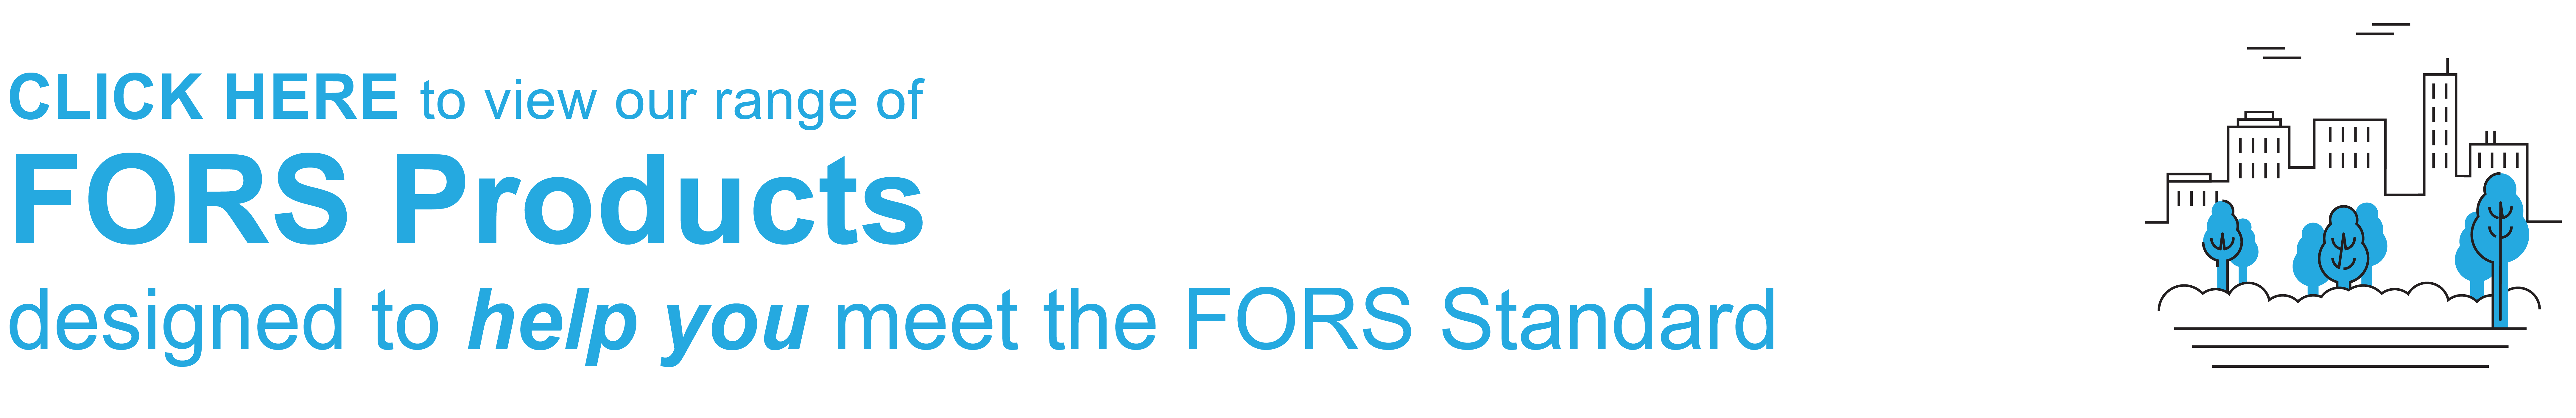 Toolkits and support documents - FORS - Fleet Operator